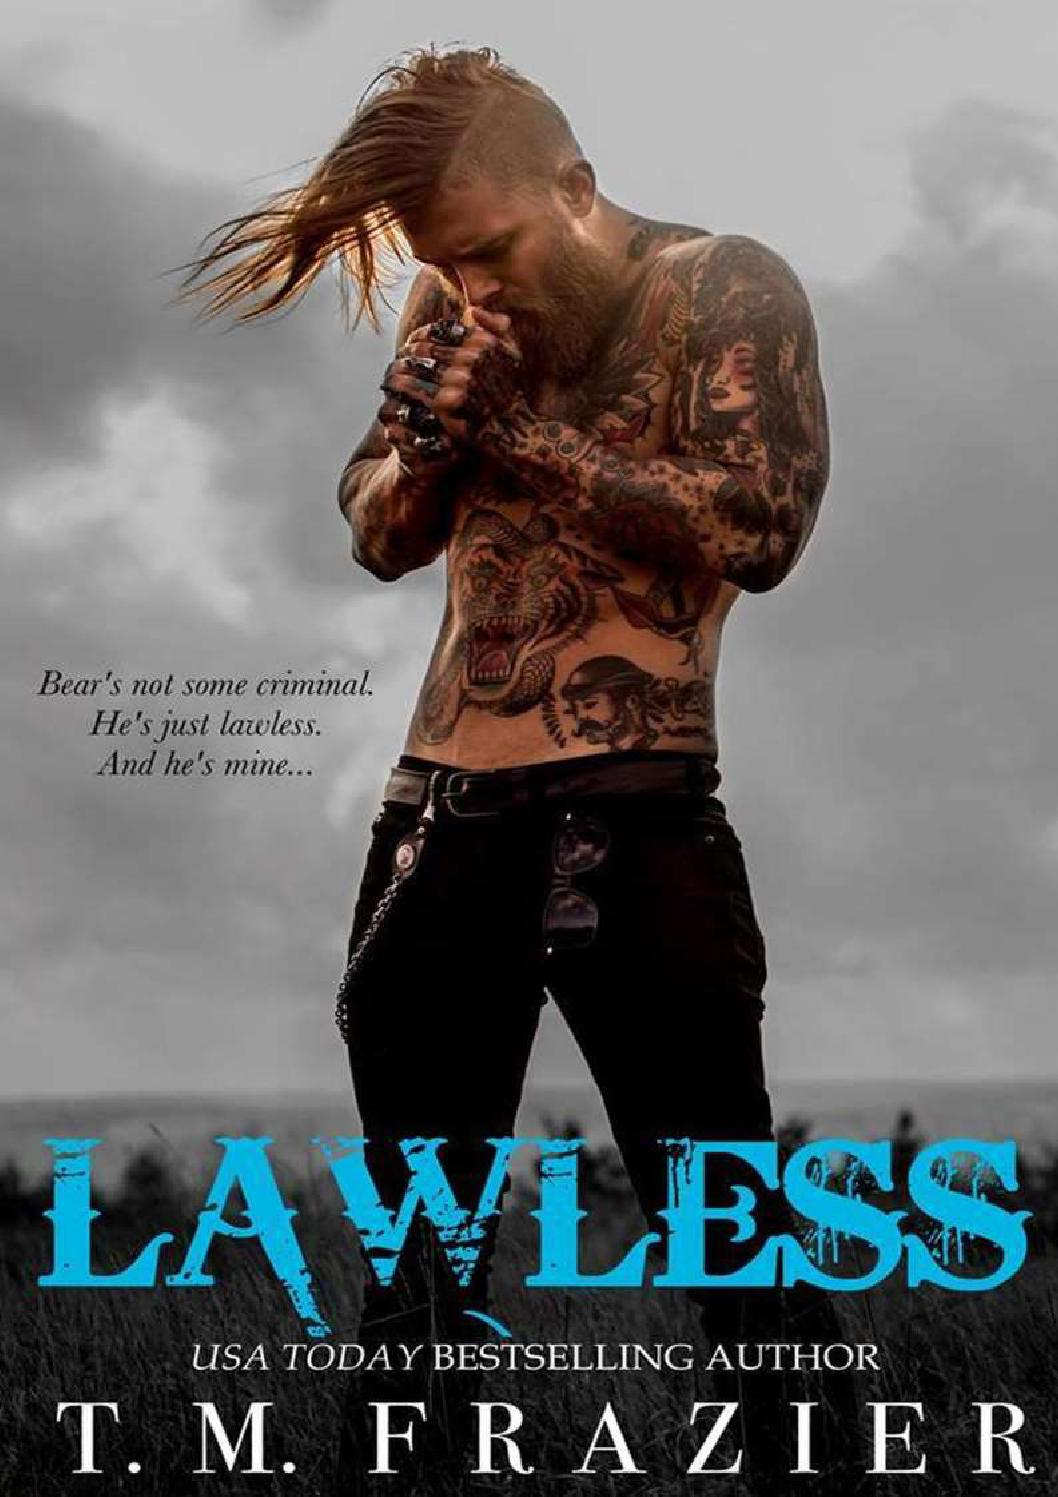 85894655b T m frazier série king %233 lawless %28revisado%29 by Mariah - issuu